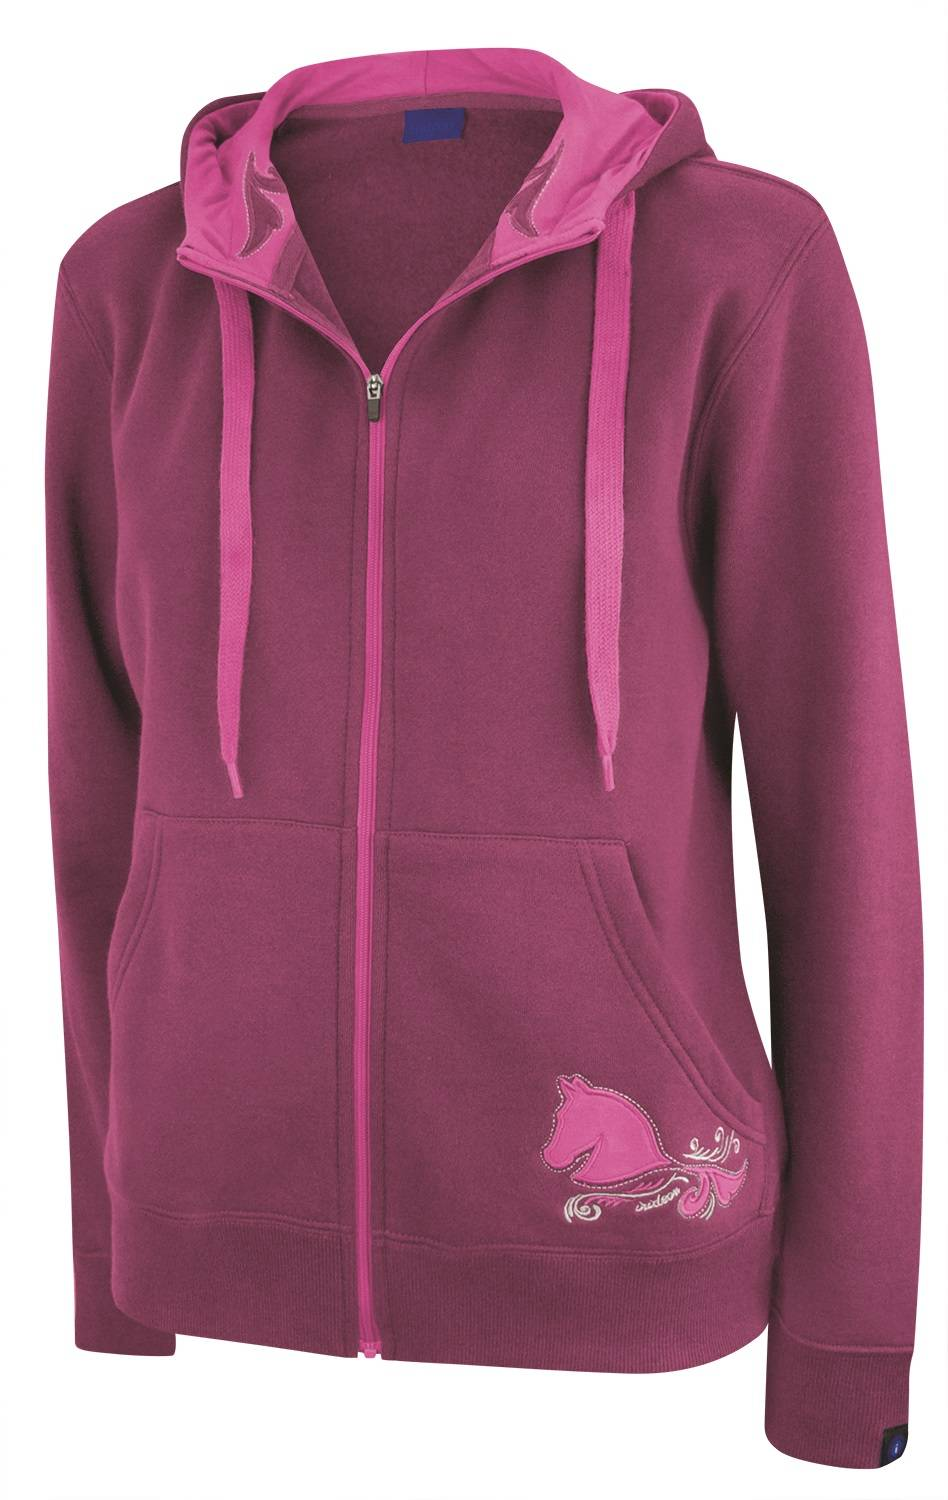 Irideon Swirly Girl Hoodie - Ladies